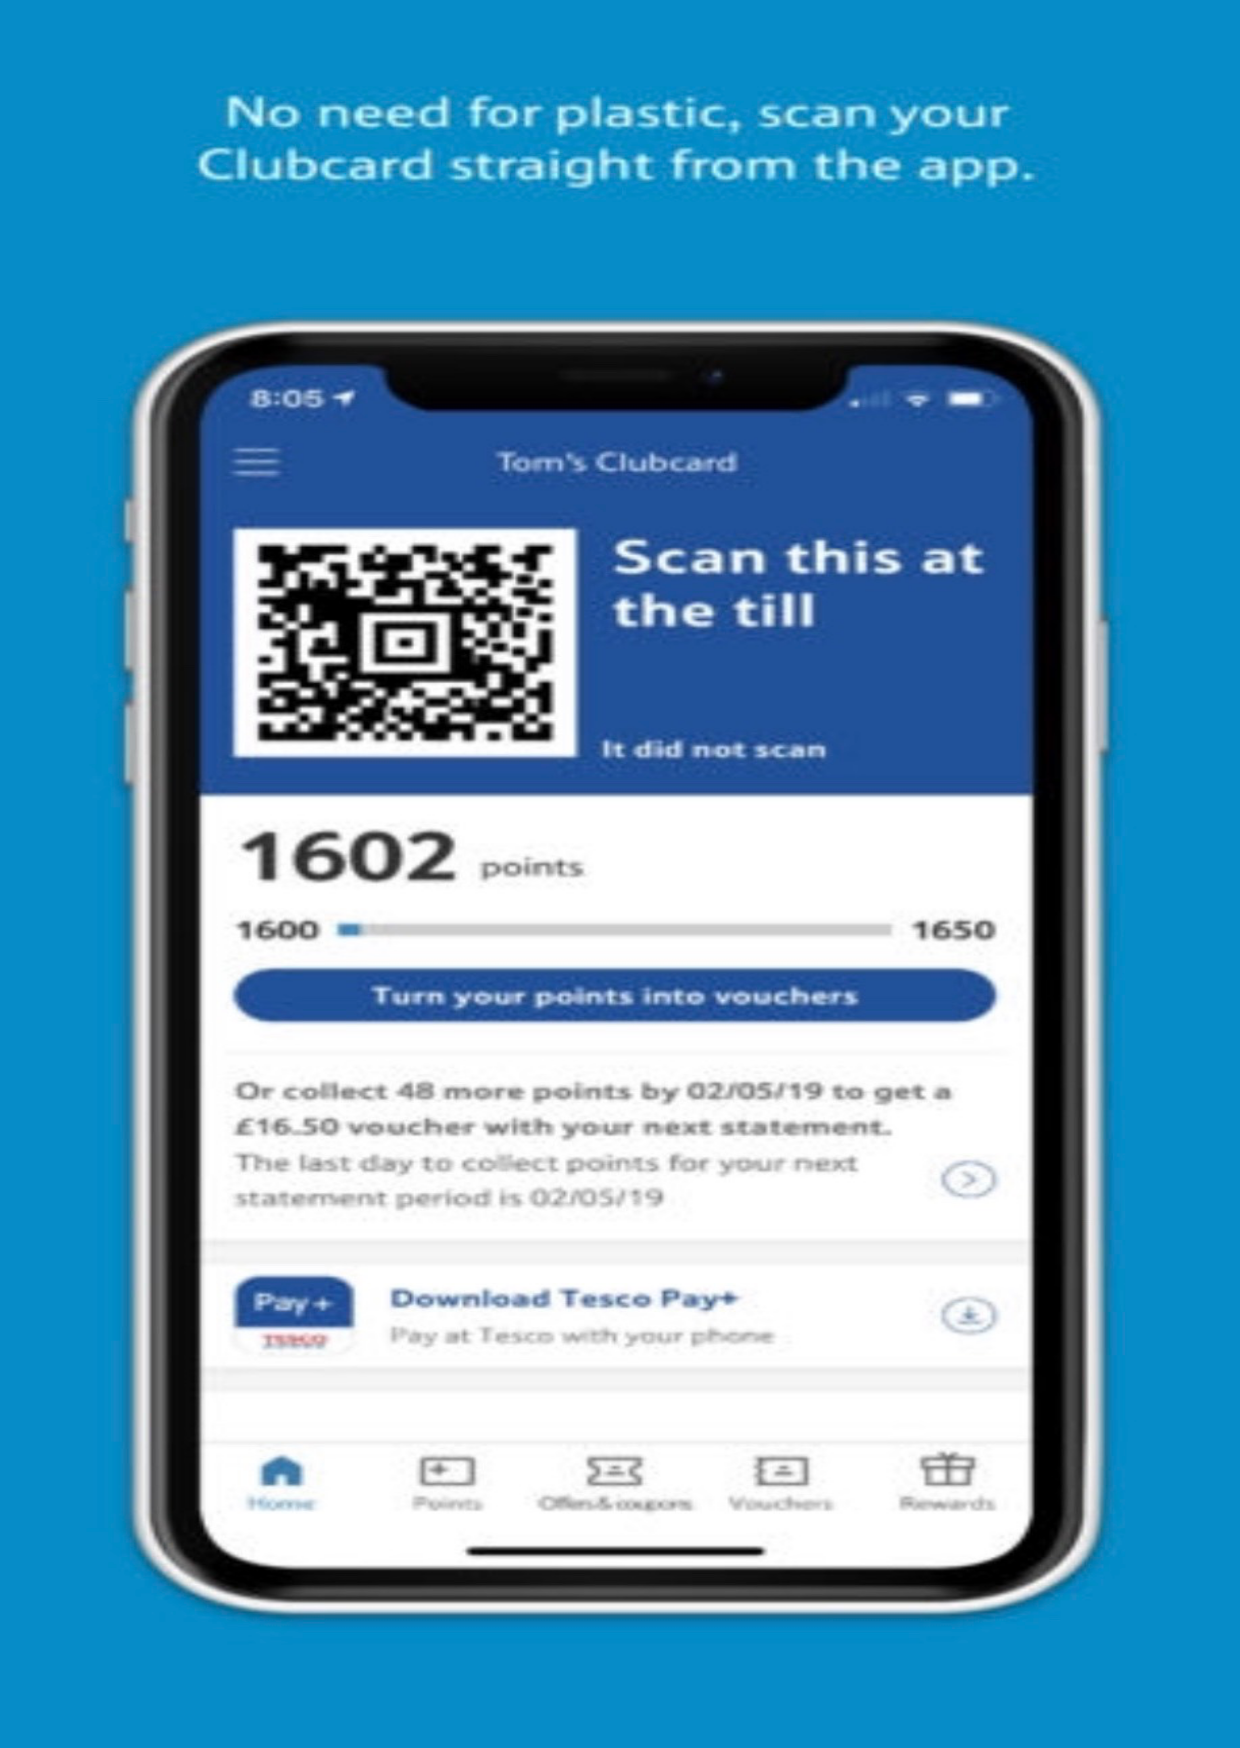 Save with Tesco Clubcard on your phone